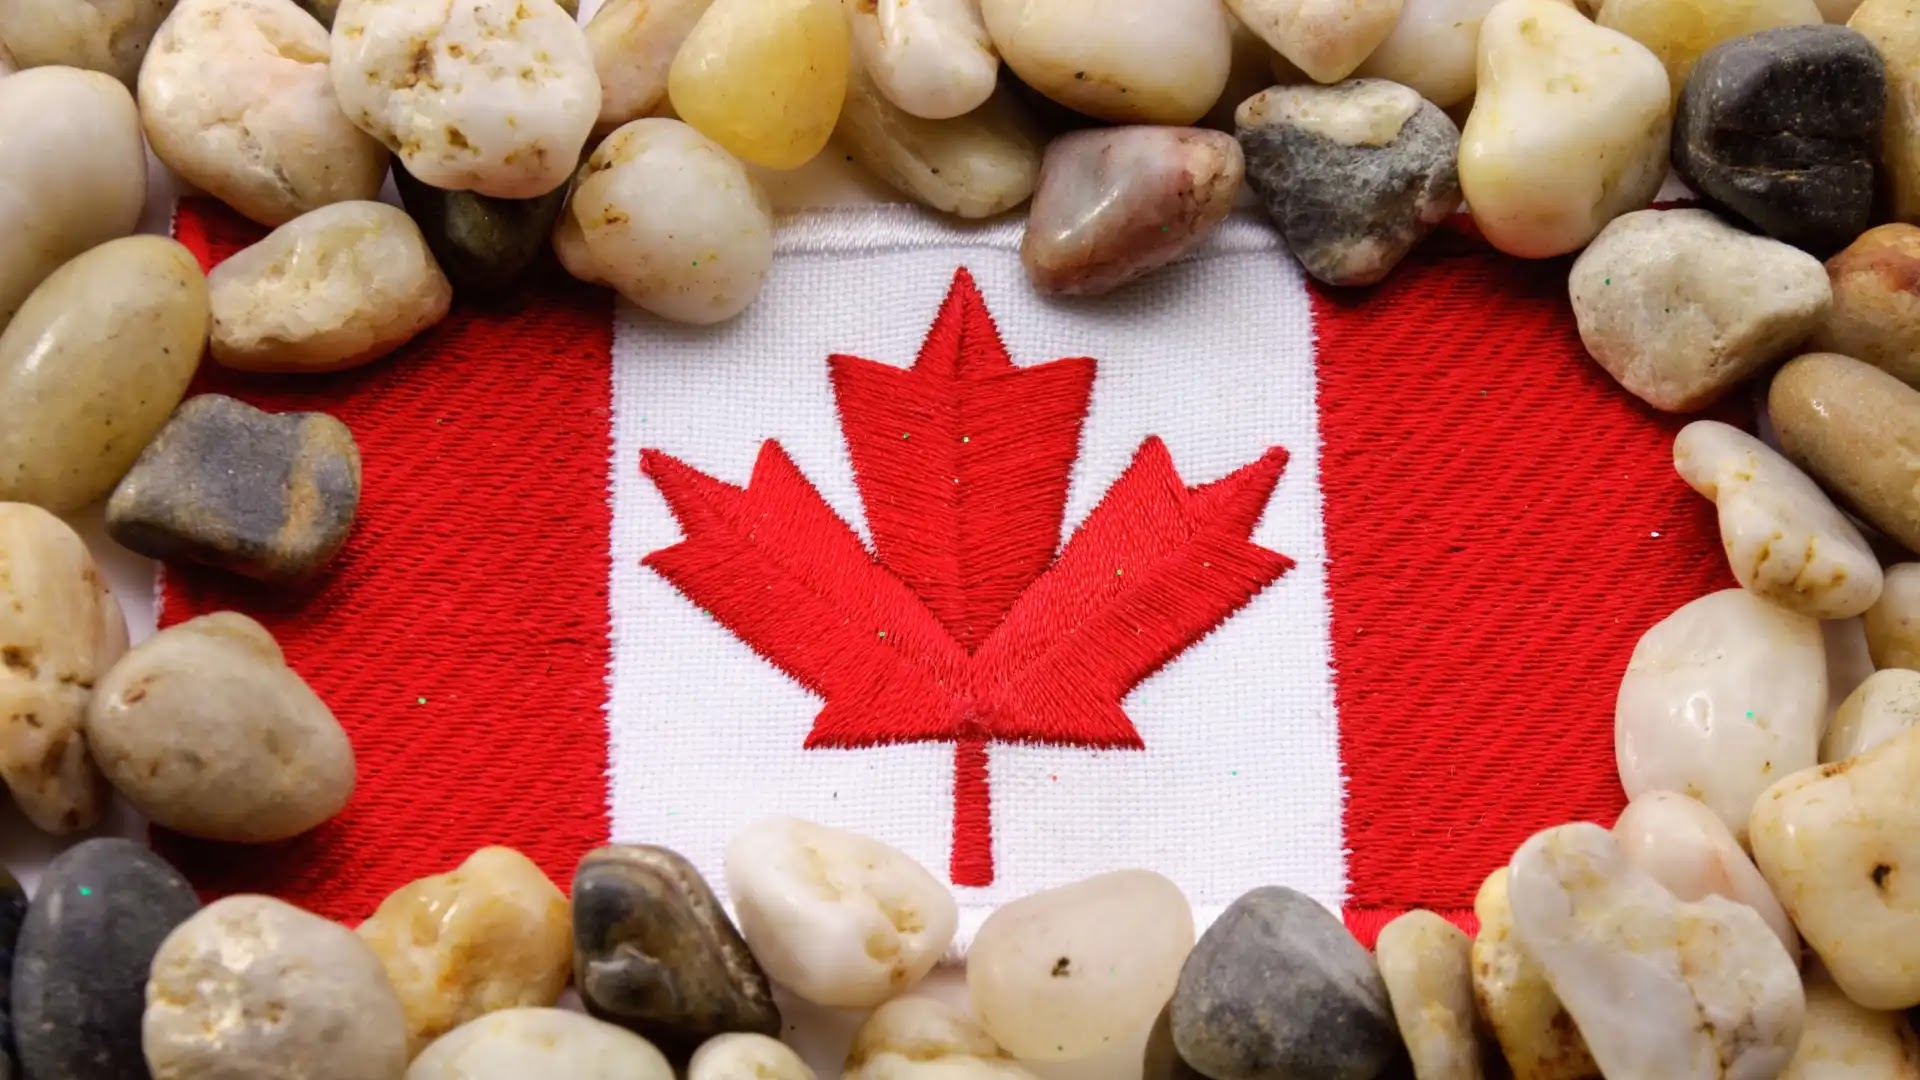 Pic of Canada flag high resolution